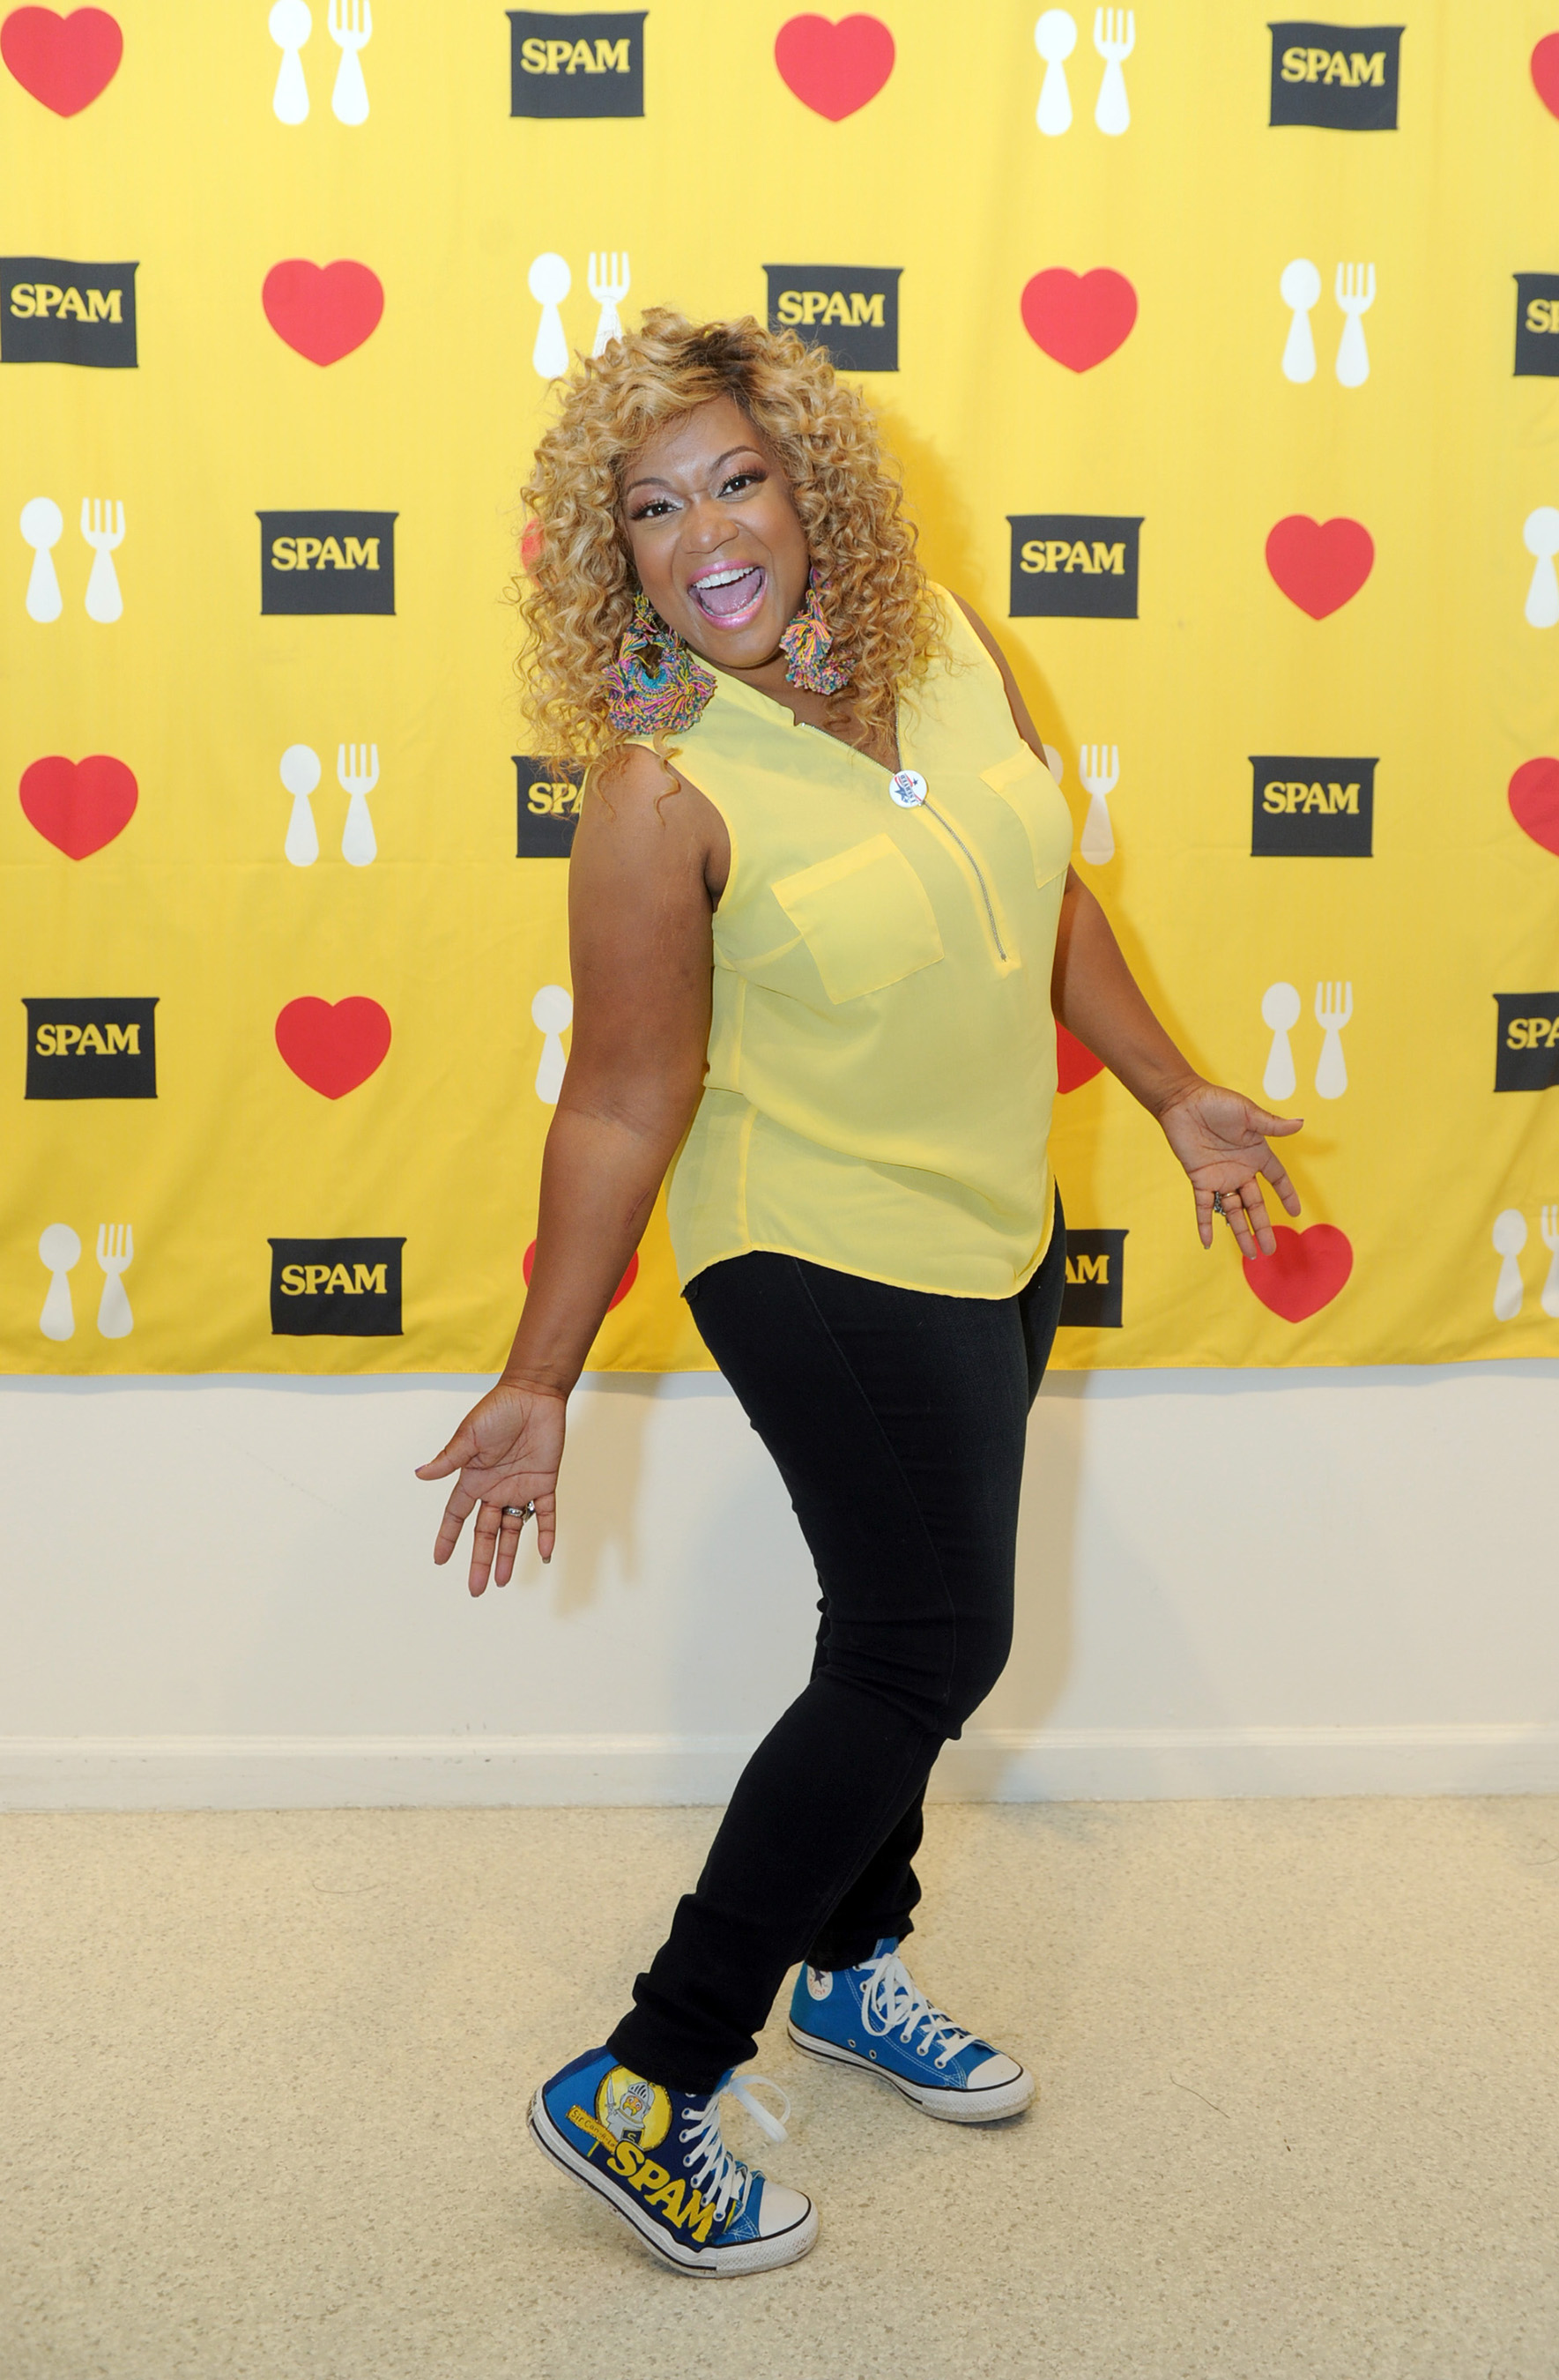 Food Network host and U.S. Air Force veteran Sunny Anderson, kicked-off the National SPAMERICAN(TM) Food Truck Tour and Operation Gratitude Partnership, Monday, April 18, 2016 in New York.